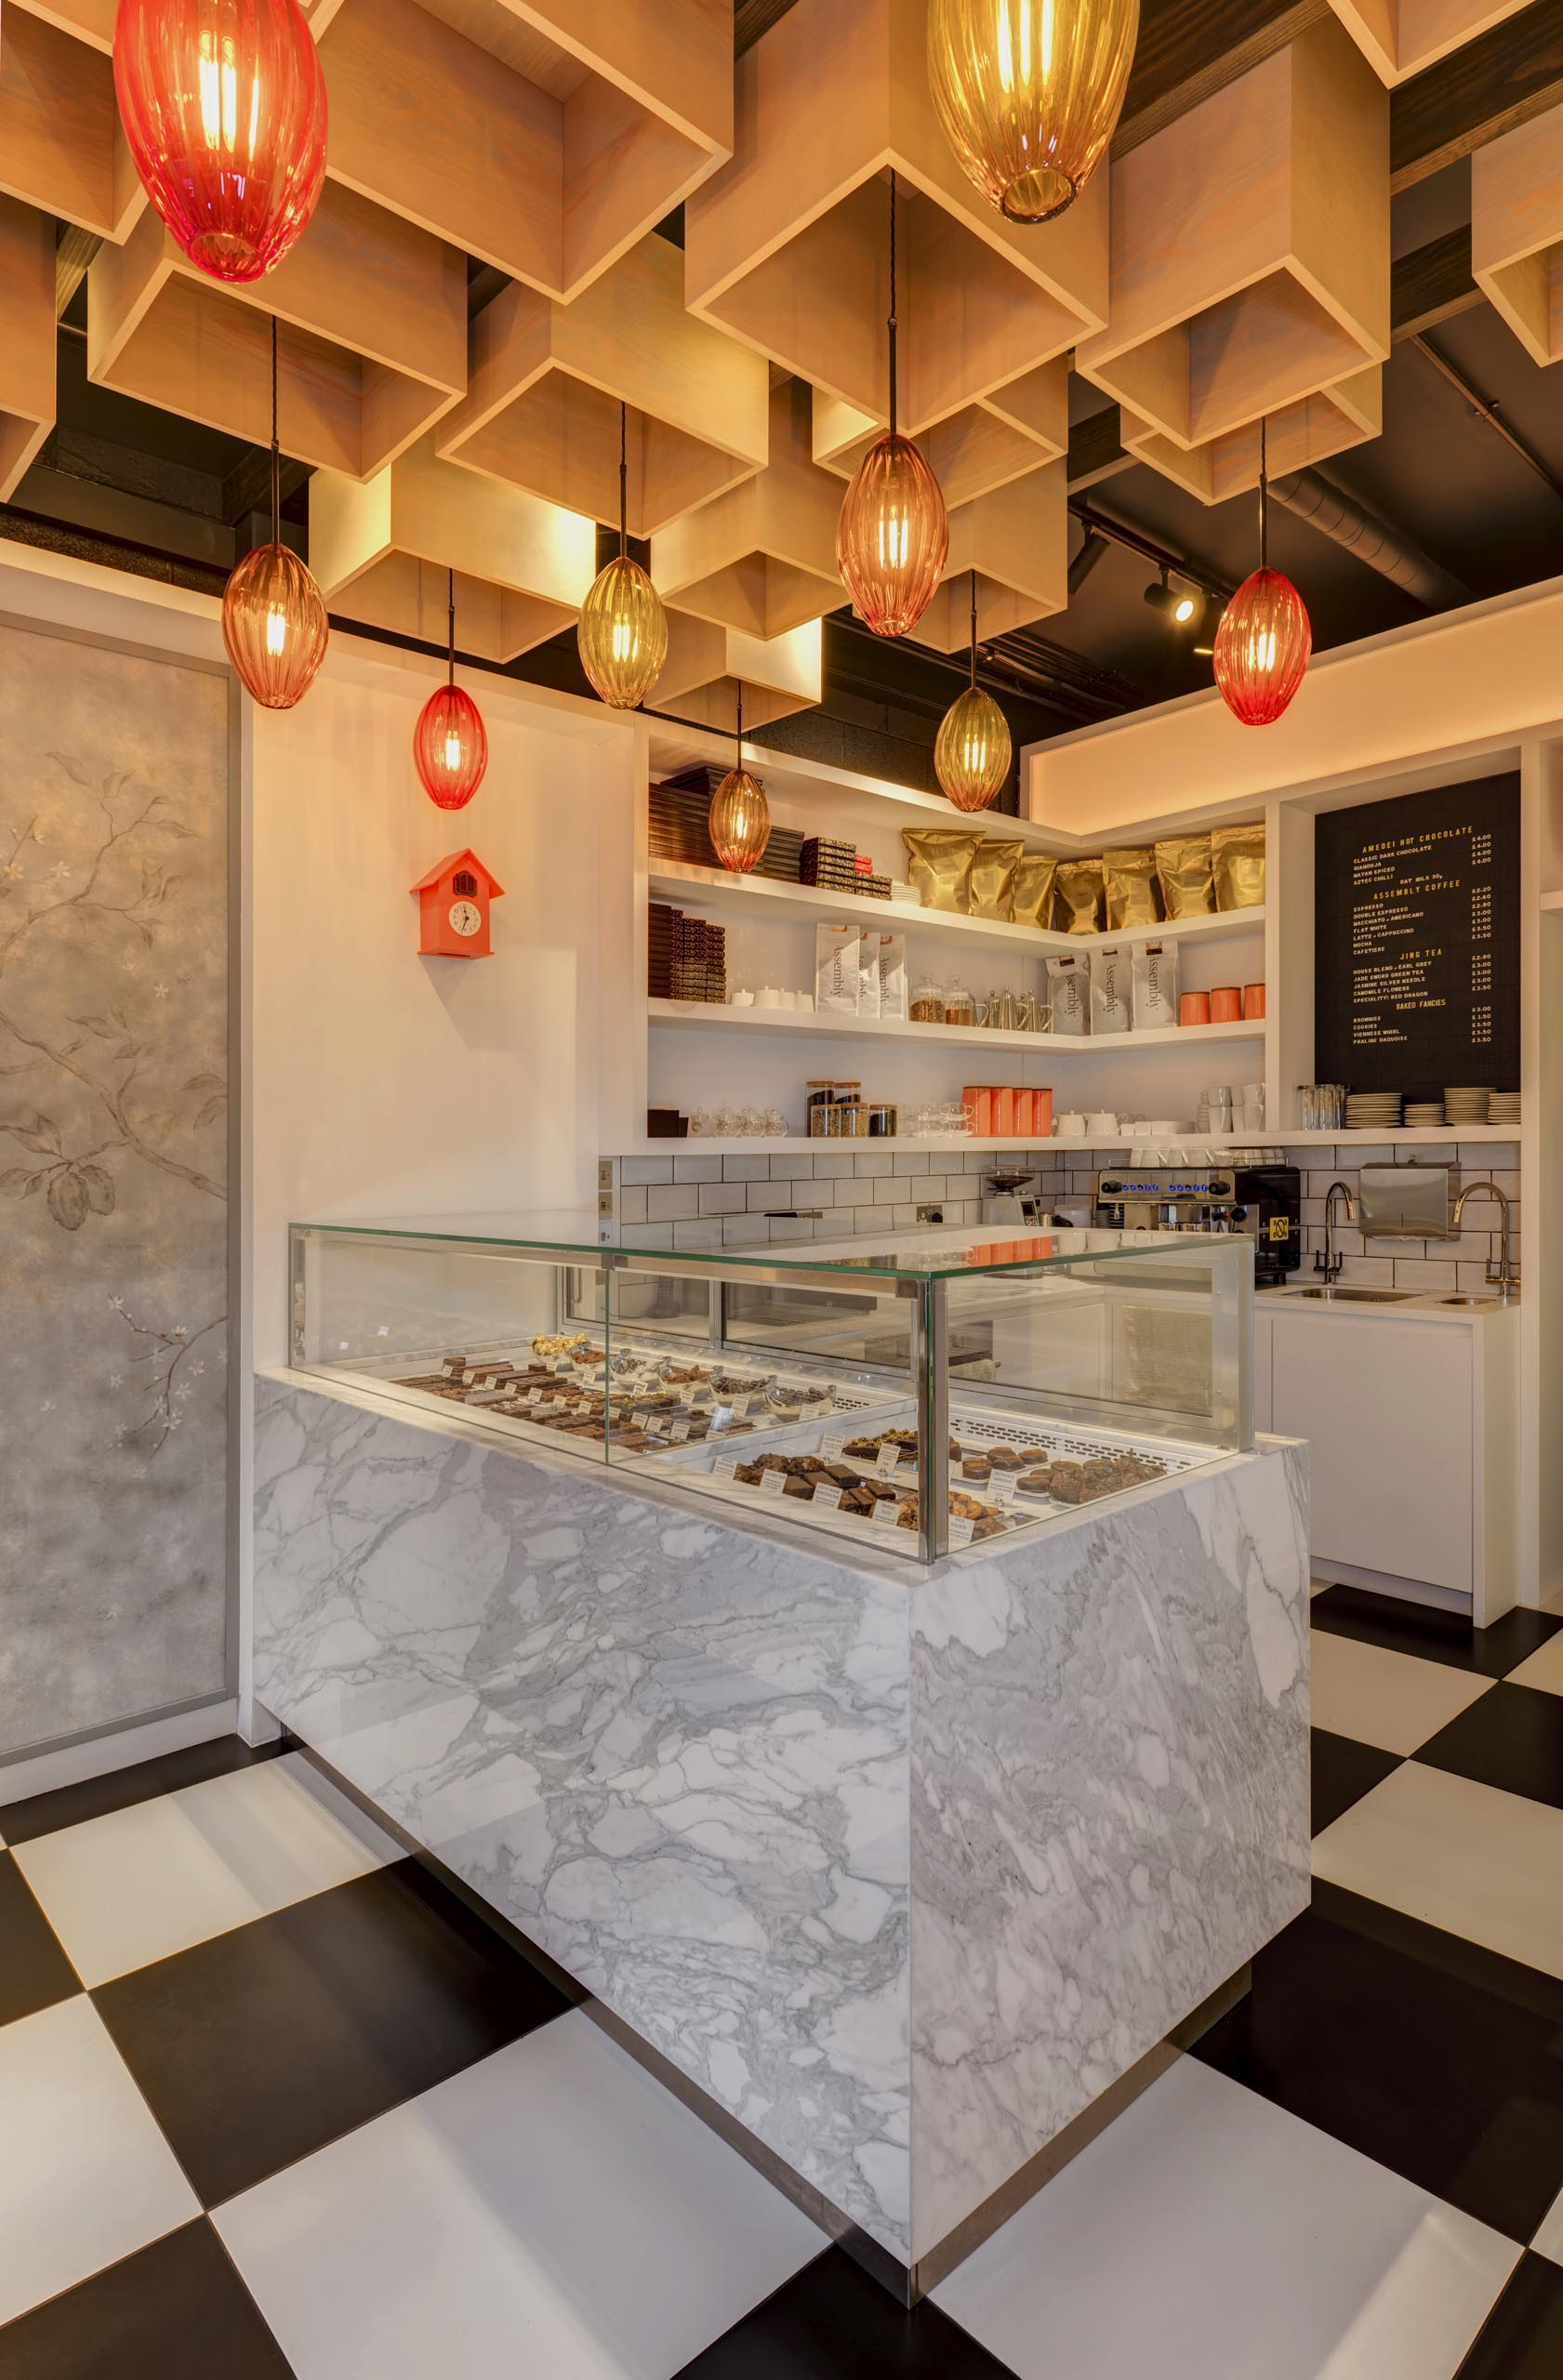 Central to this retail interior is a bespoke Calacatta marble clad climate controlled display cabinet that used for displaying individual chocolates and patisserie.